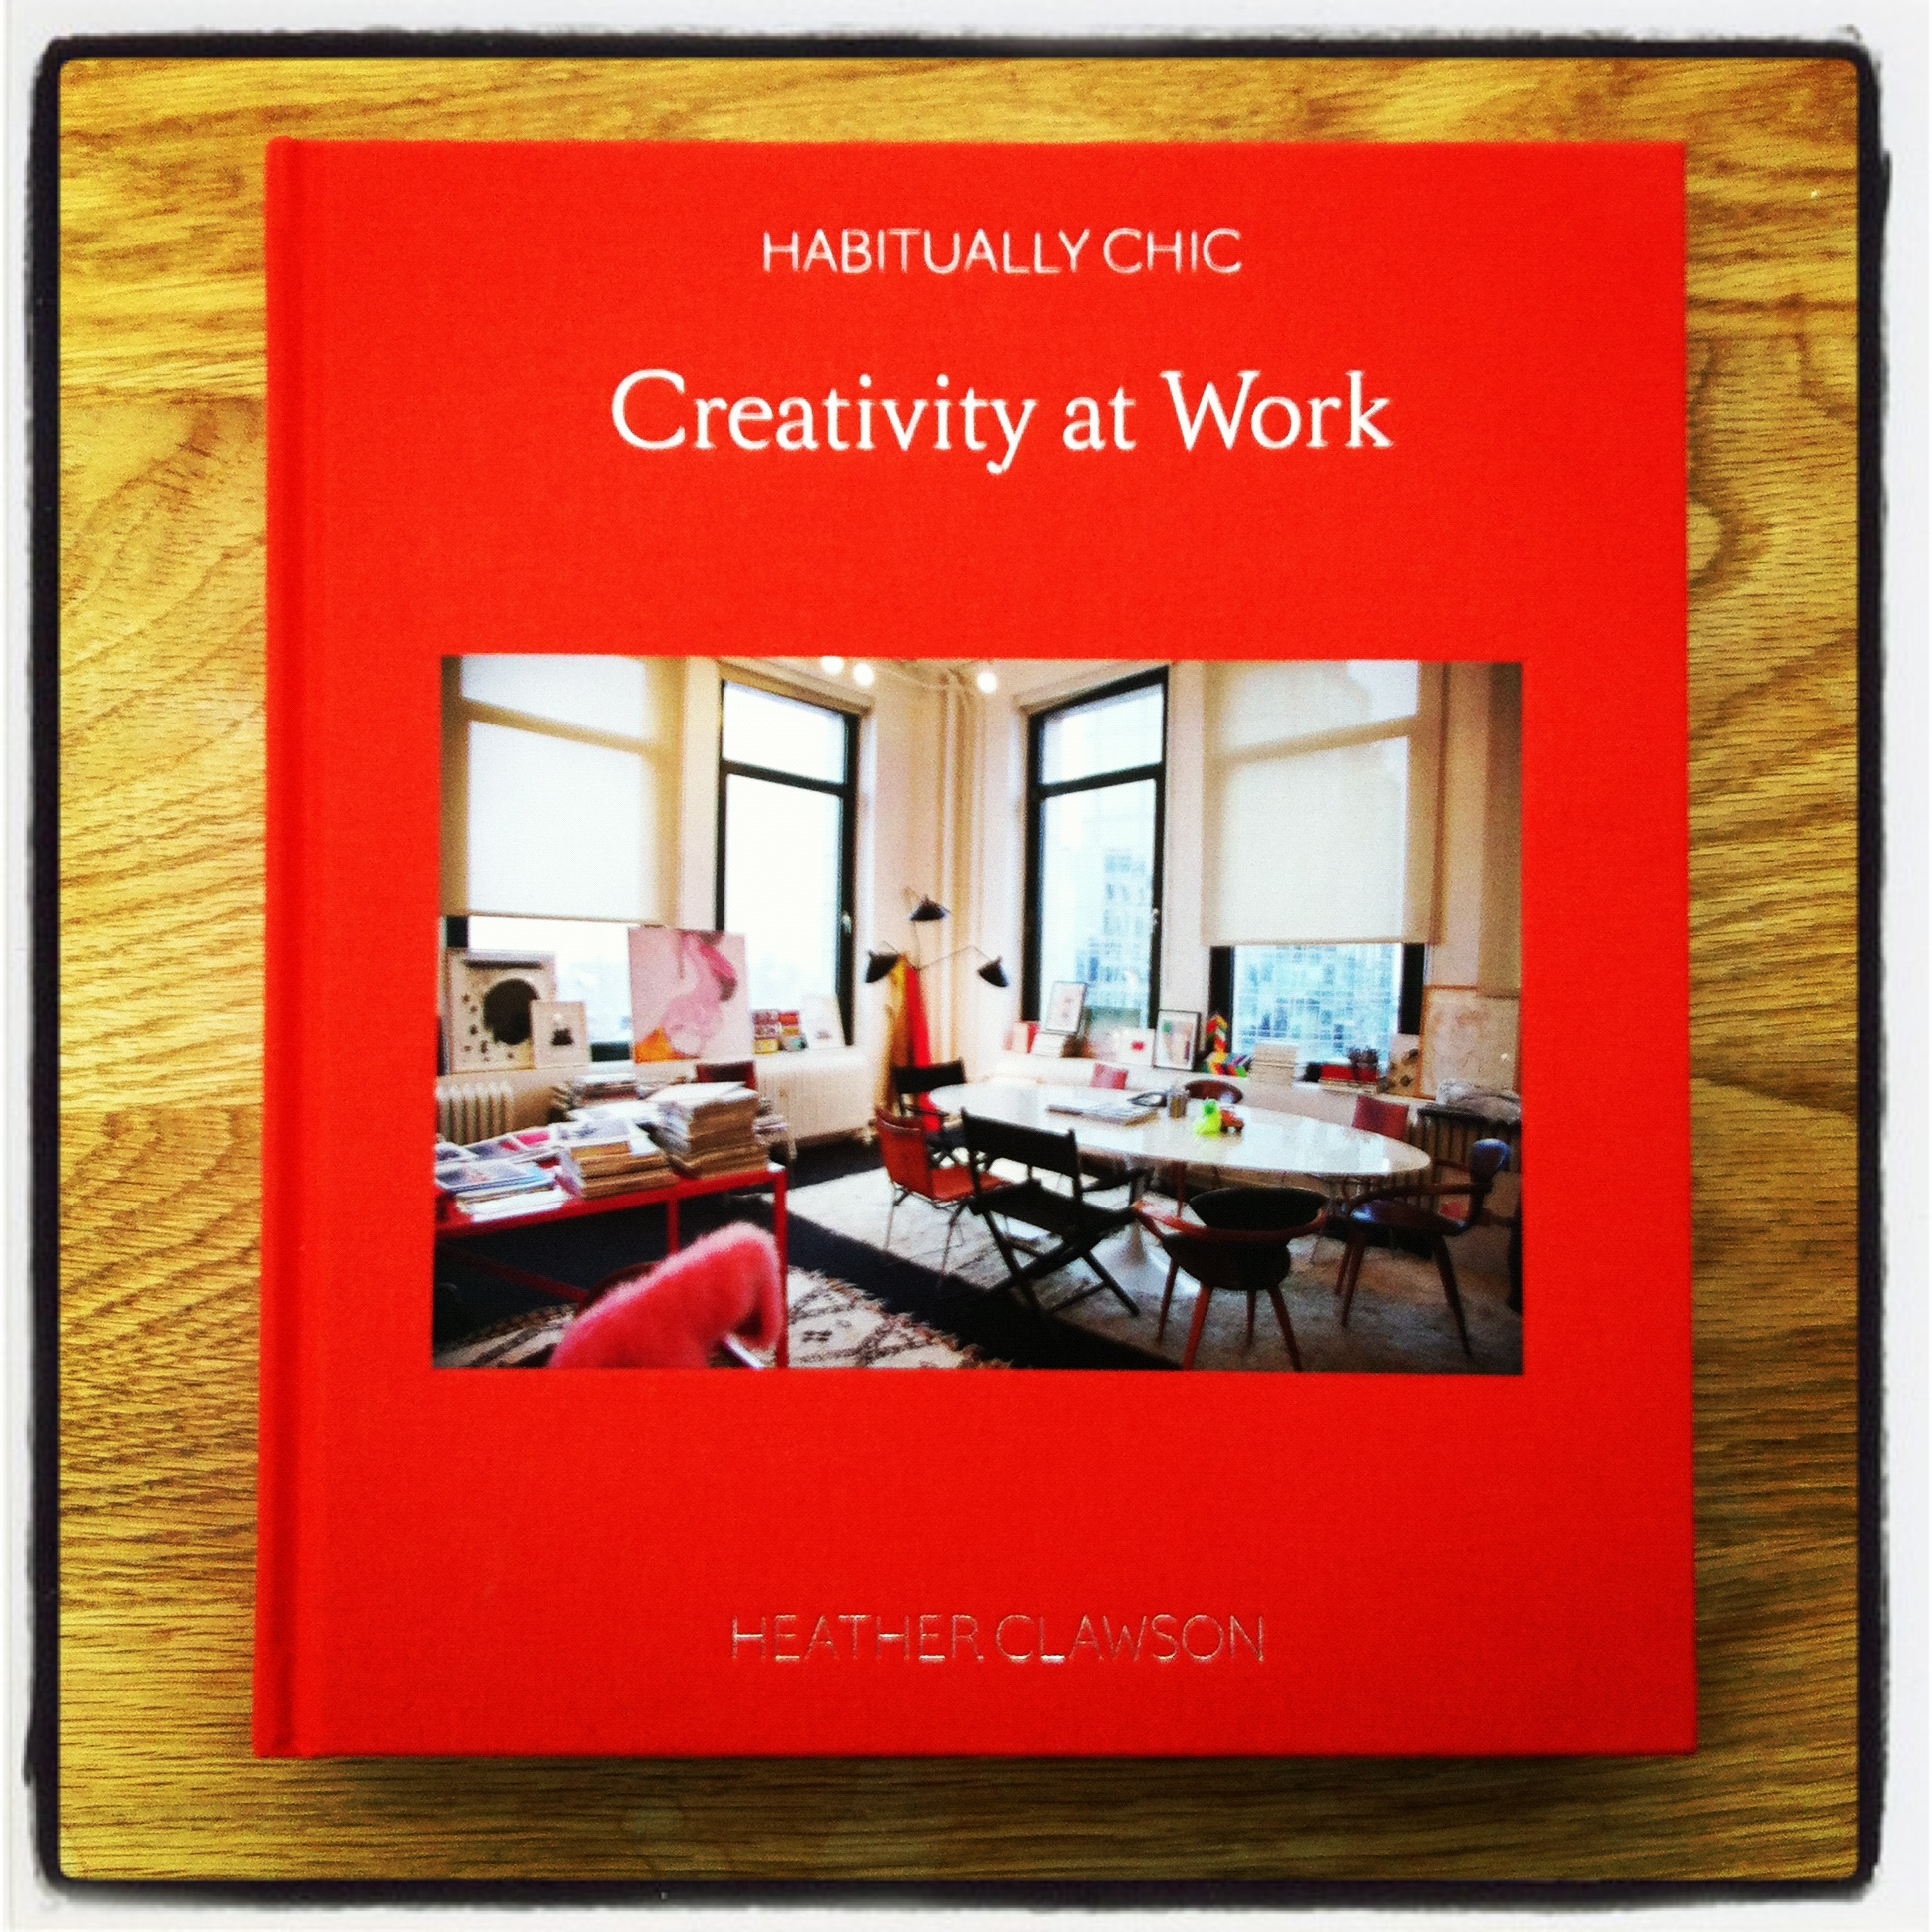 Creativity at Work, by Heather Clawson: a book to inspire you to get creative